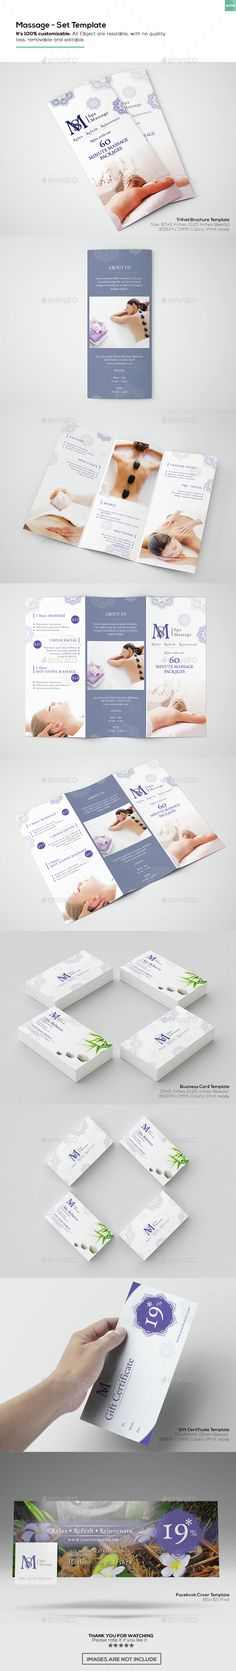 Spa Marketing Postcard / Flyer Vol.2 | Spa, Massage Business And